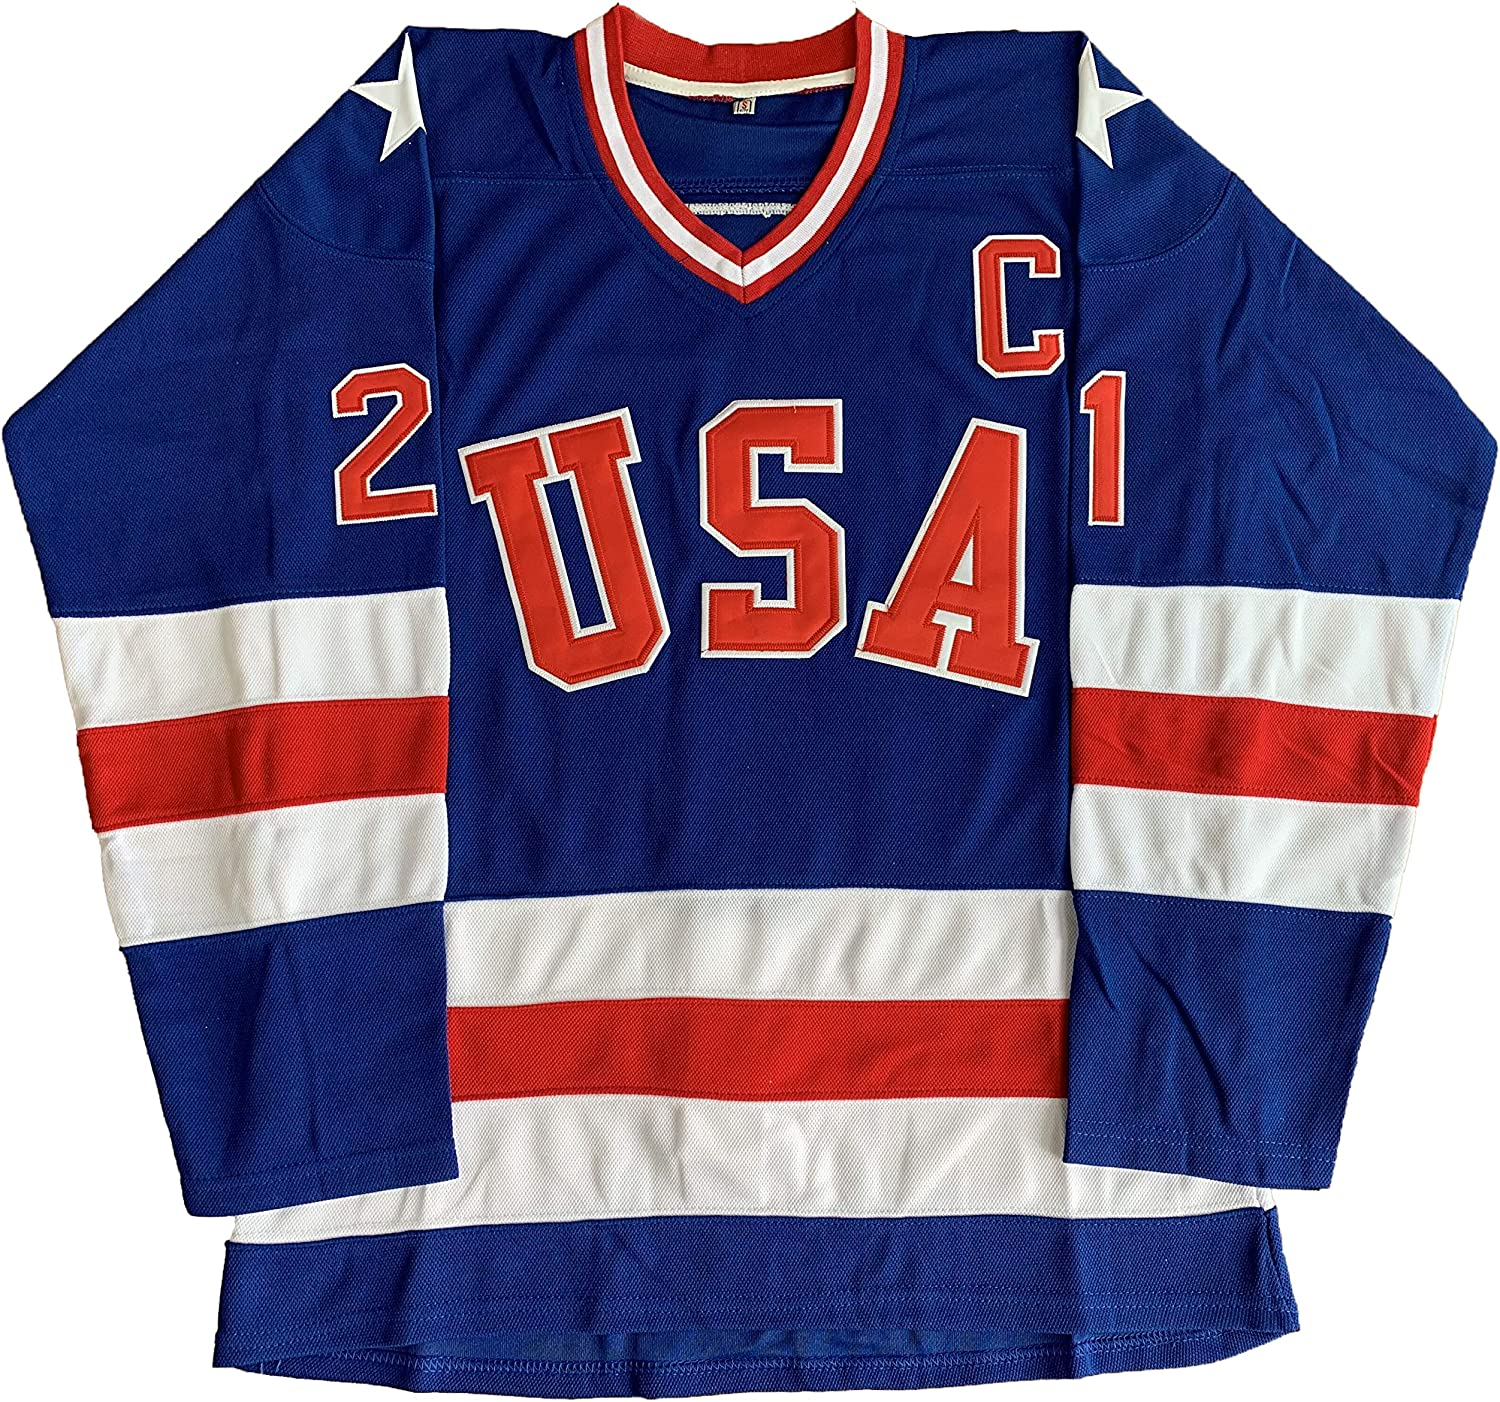 1980 USA Olympic Hockey #21 Mike Eruzione #17 O'Callahan #30 Jim Craig Miracle On Ice USA Jersey White Blue